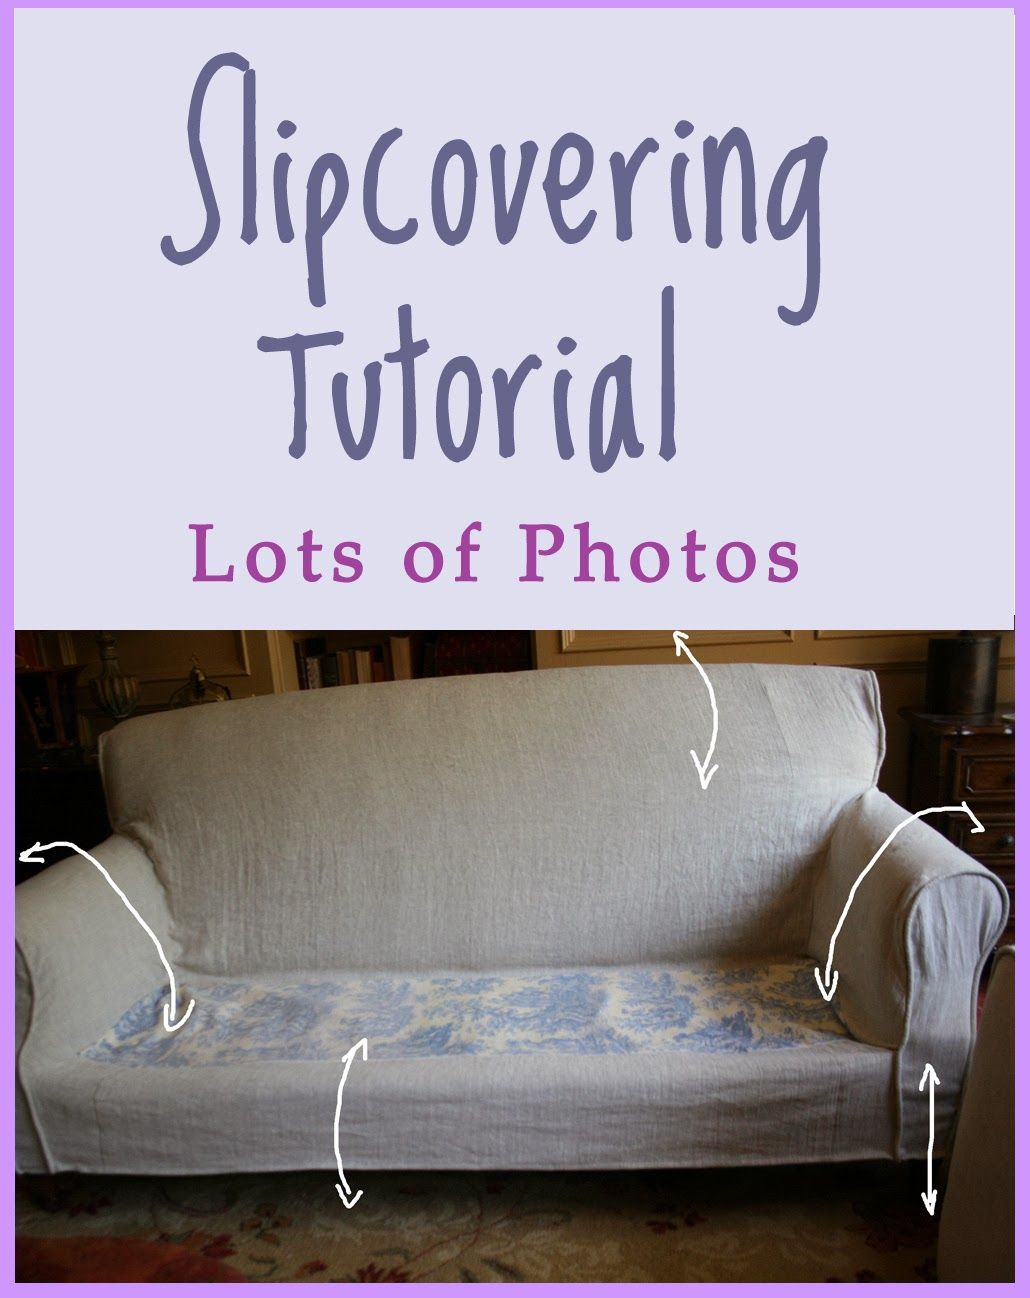 Marvelous Great Tutorial On Making A High Quality Slip Cover And Bringing A Couch Up  To Date! Www.cedarhillfarmhouse.com